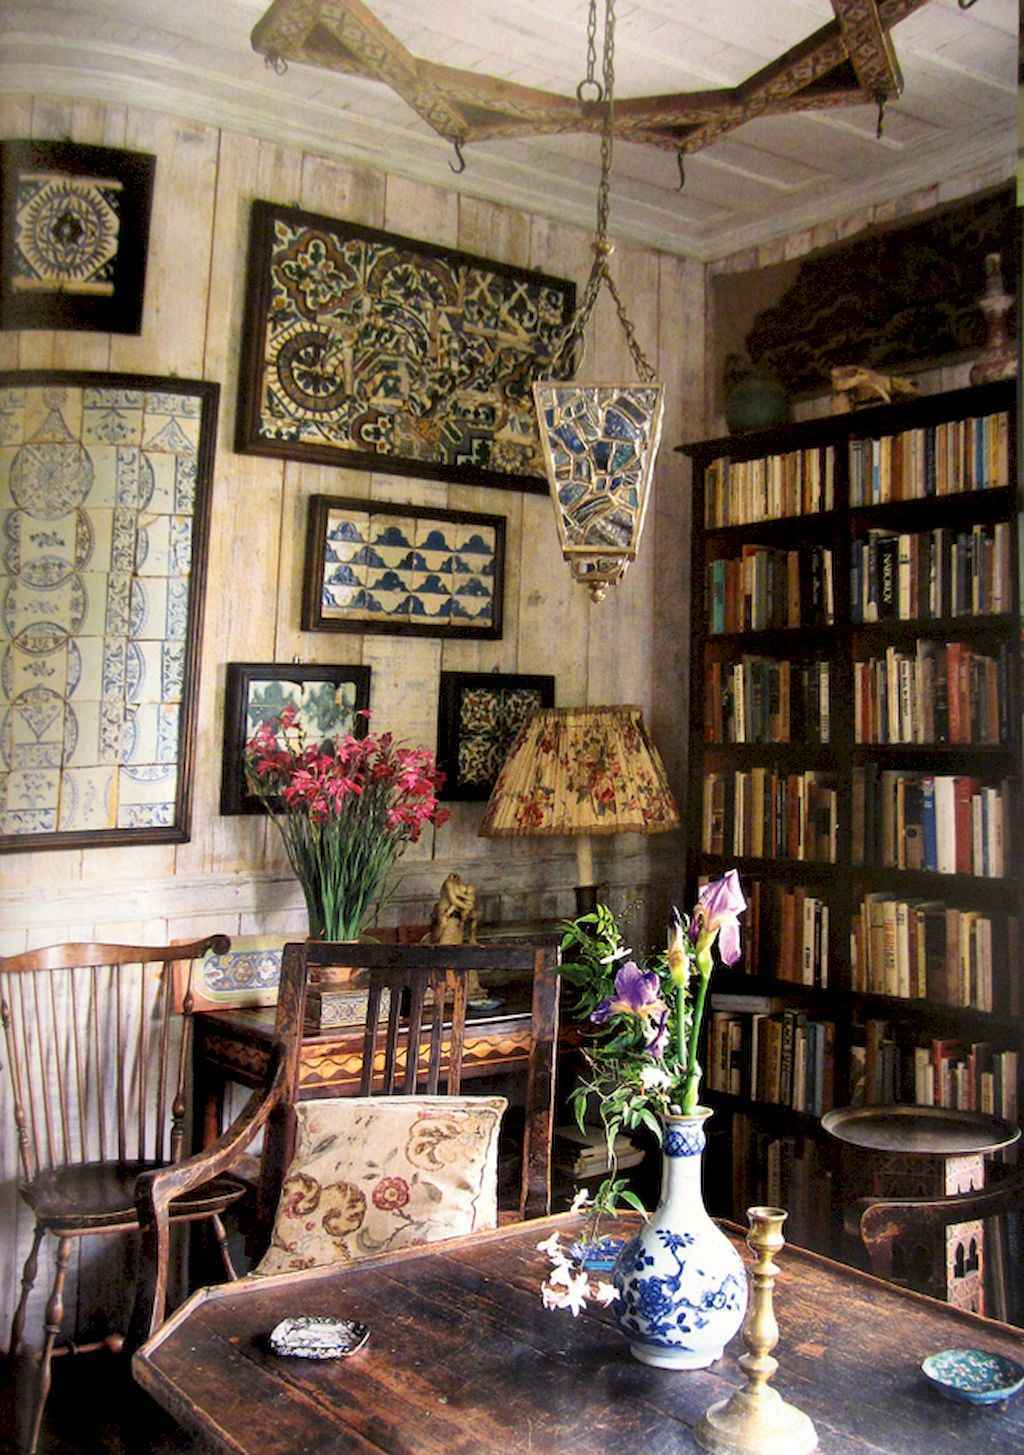 Wall of books and a crooked lamp with a pleated lampshade.